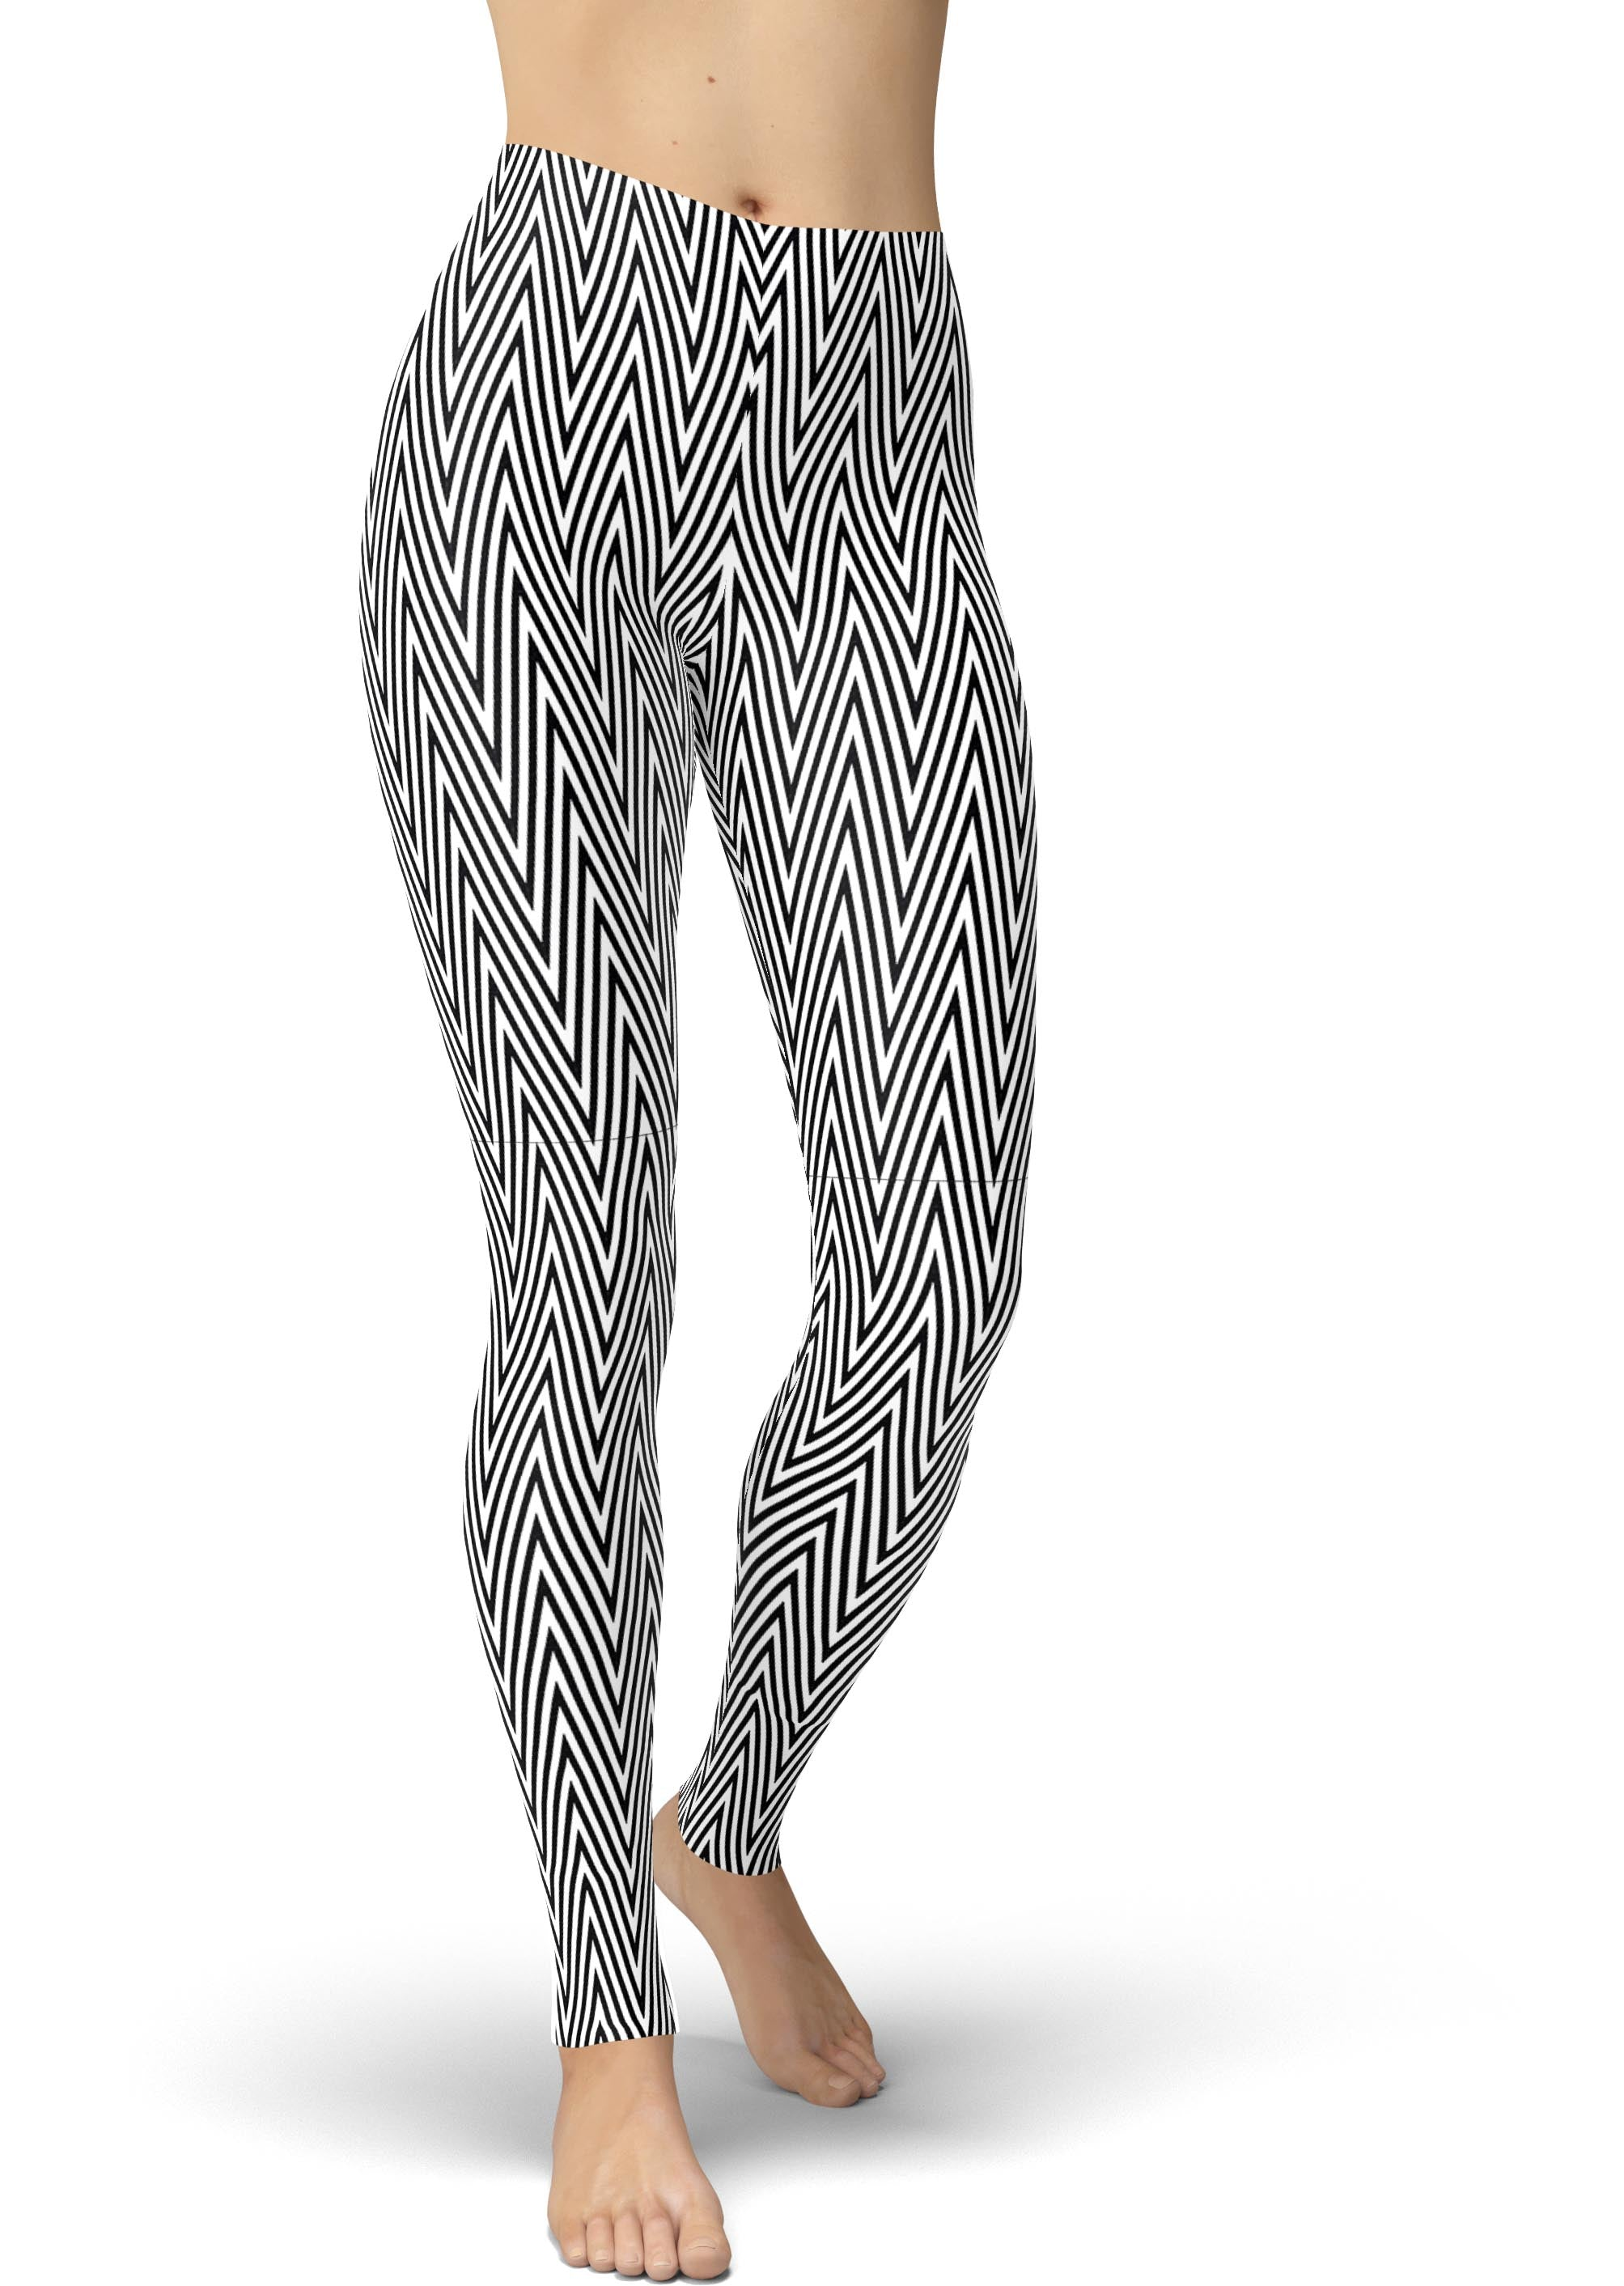 Black & White Geometric Chevron Leggings